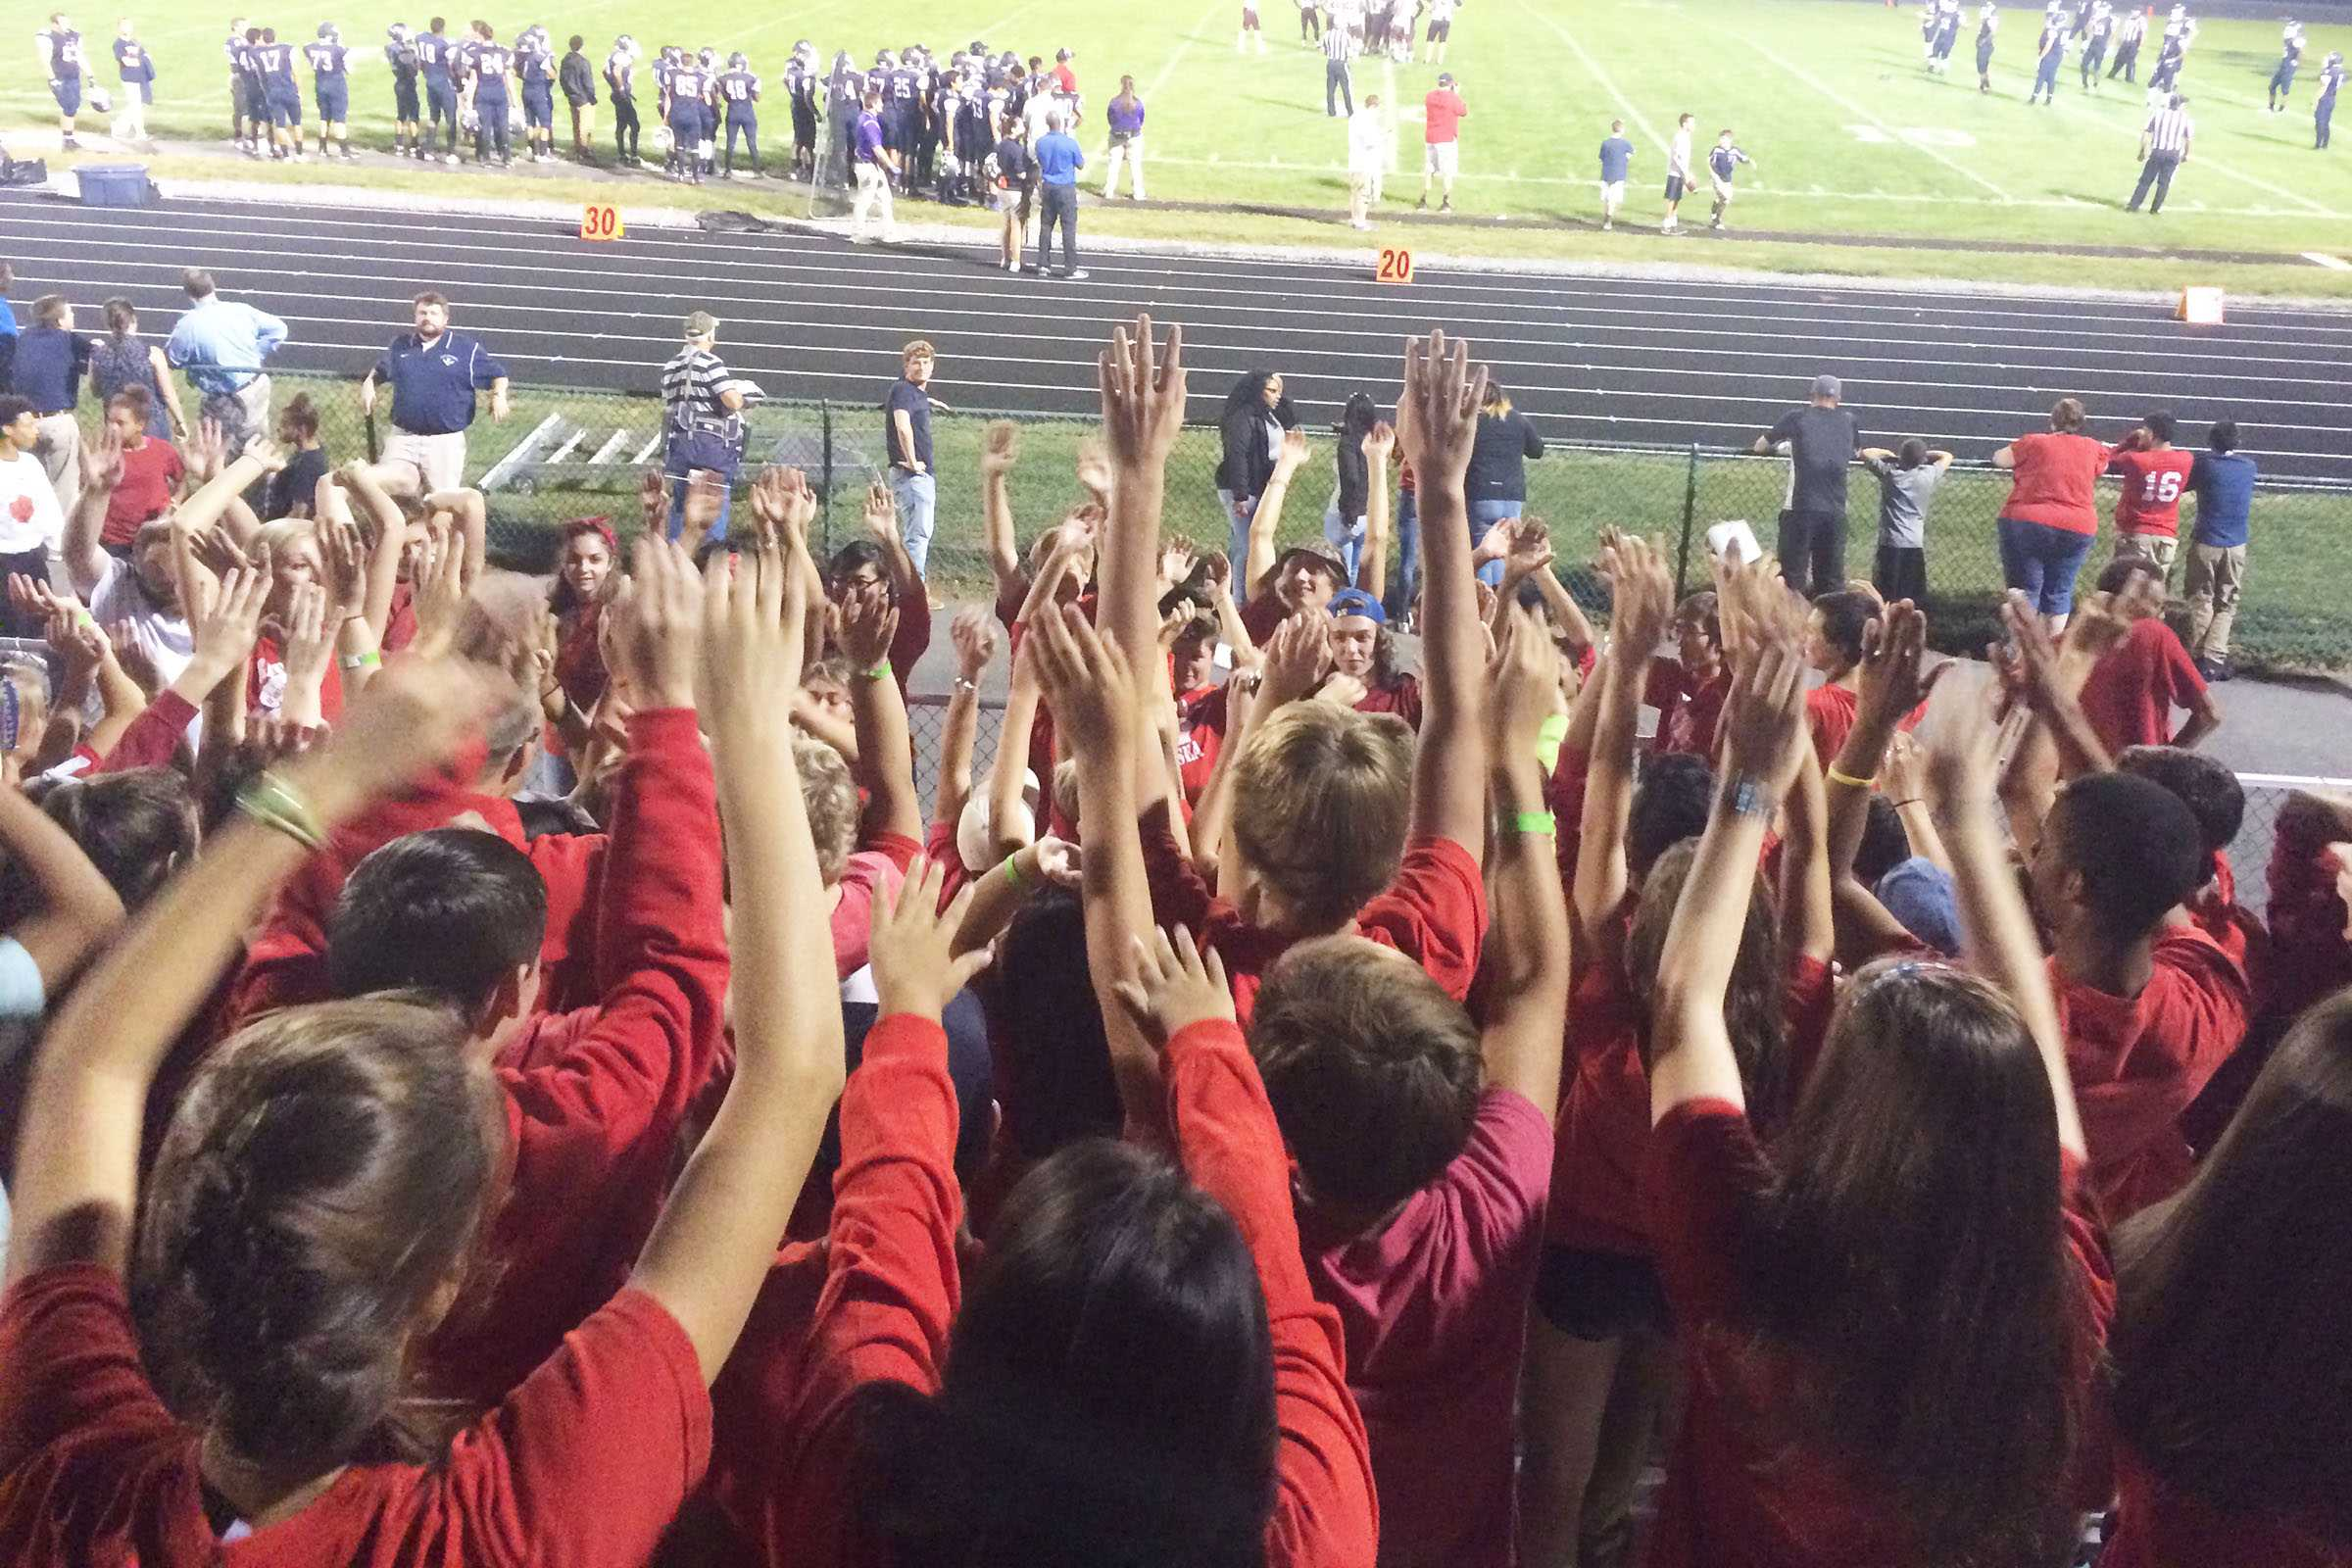 The Red Sea gets their hands up in support of the team.